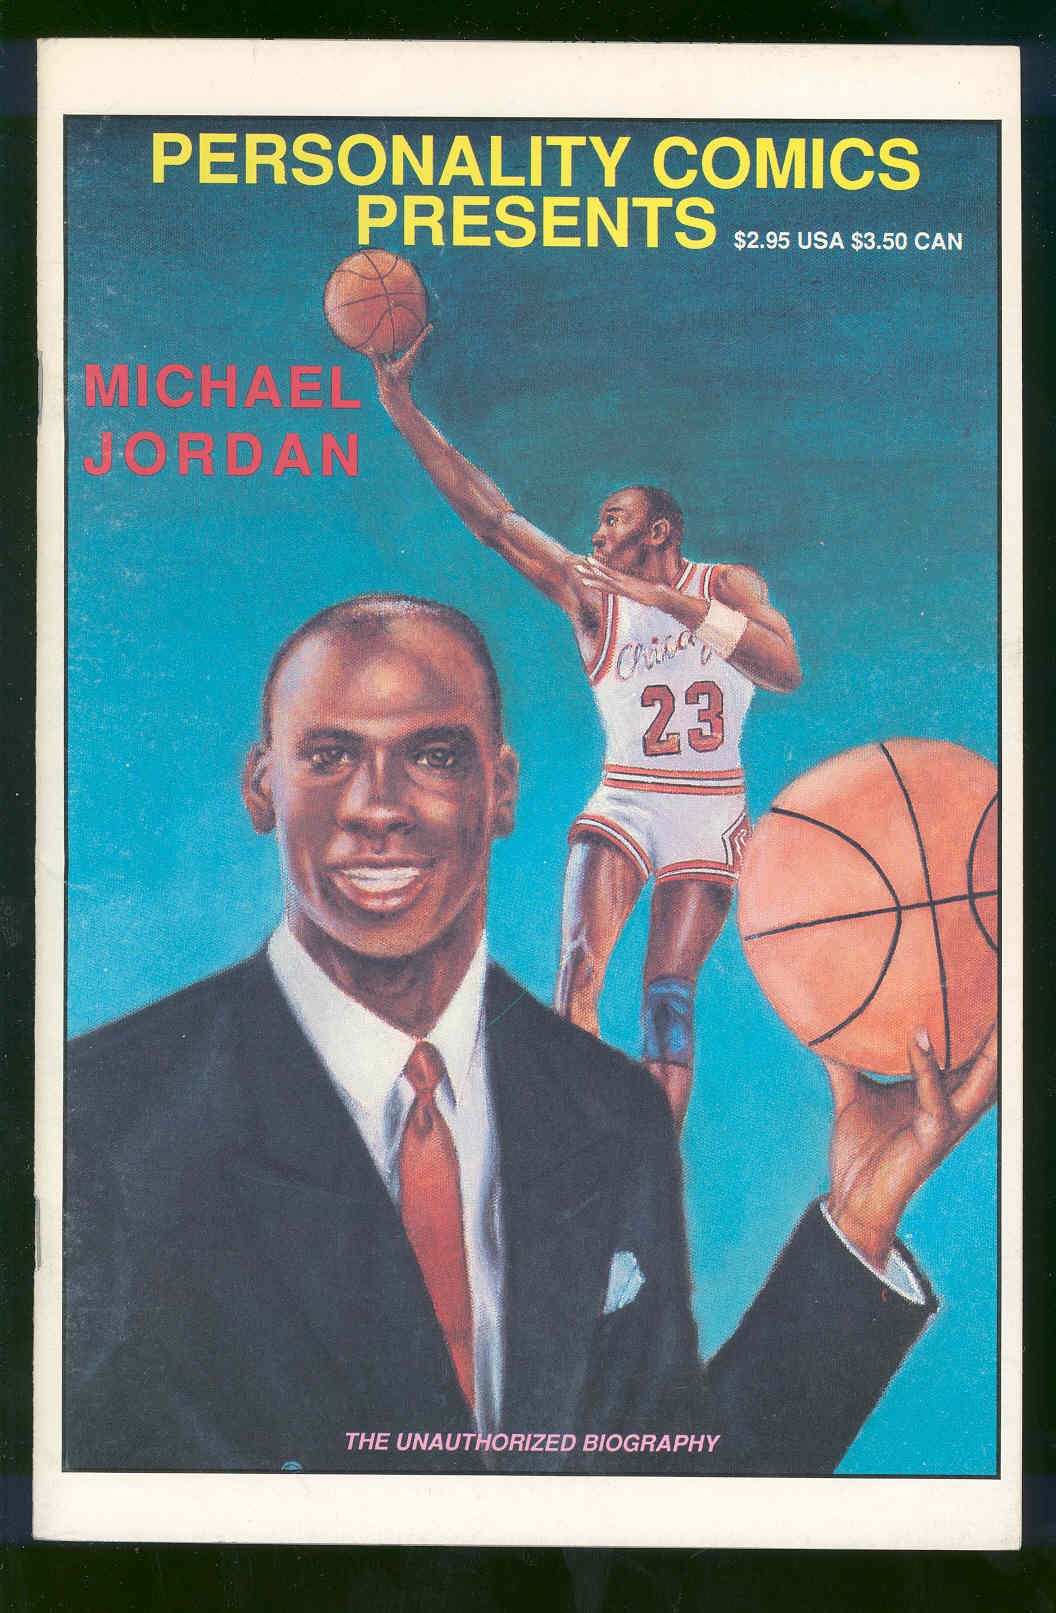 1991 Personality Comics Michael Jordan Bulls Comic Biography RARE